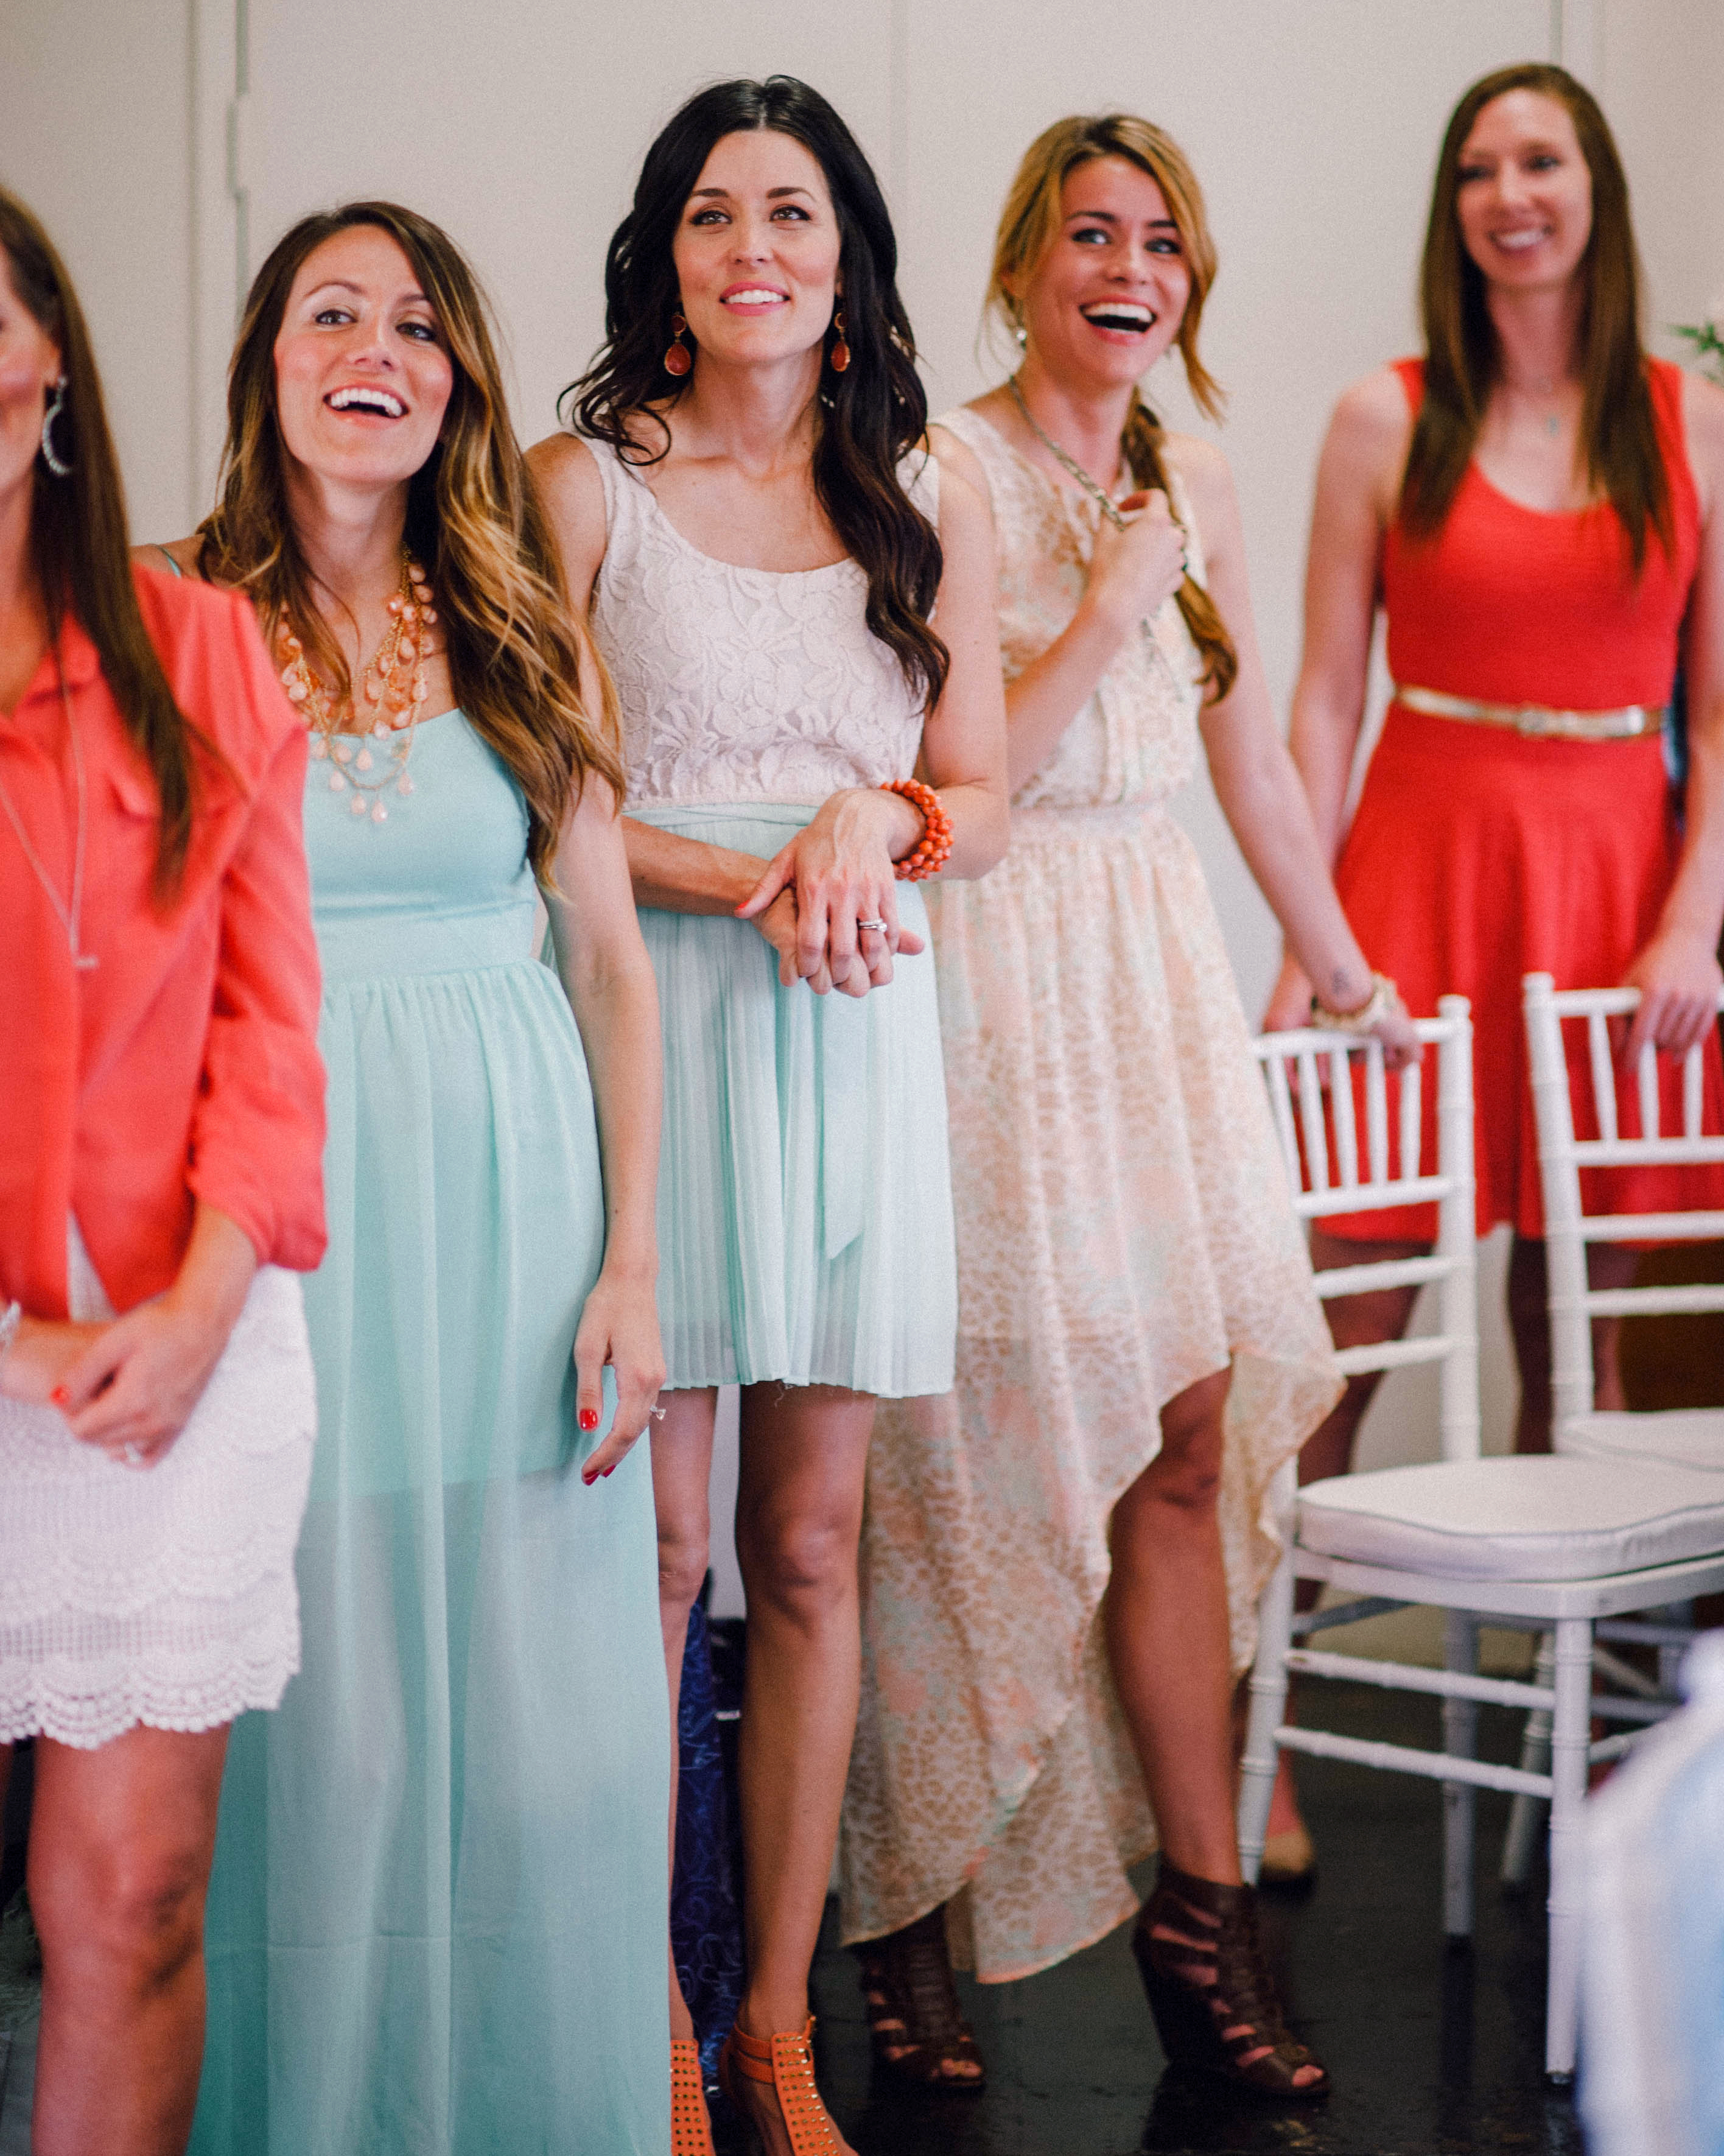 The Matrons of Honor